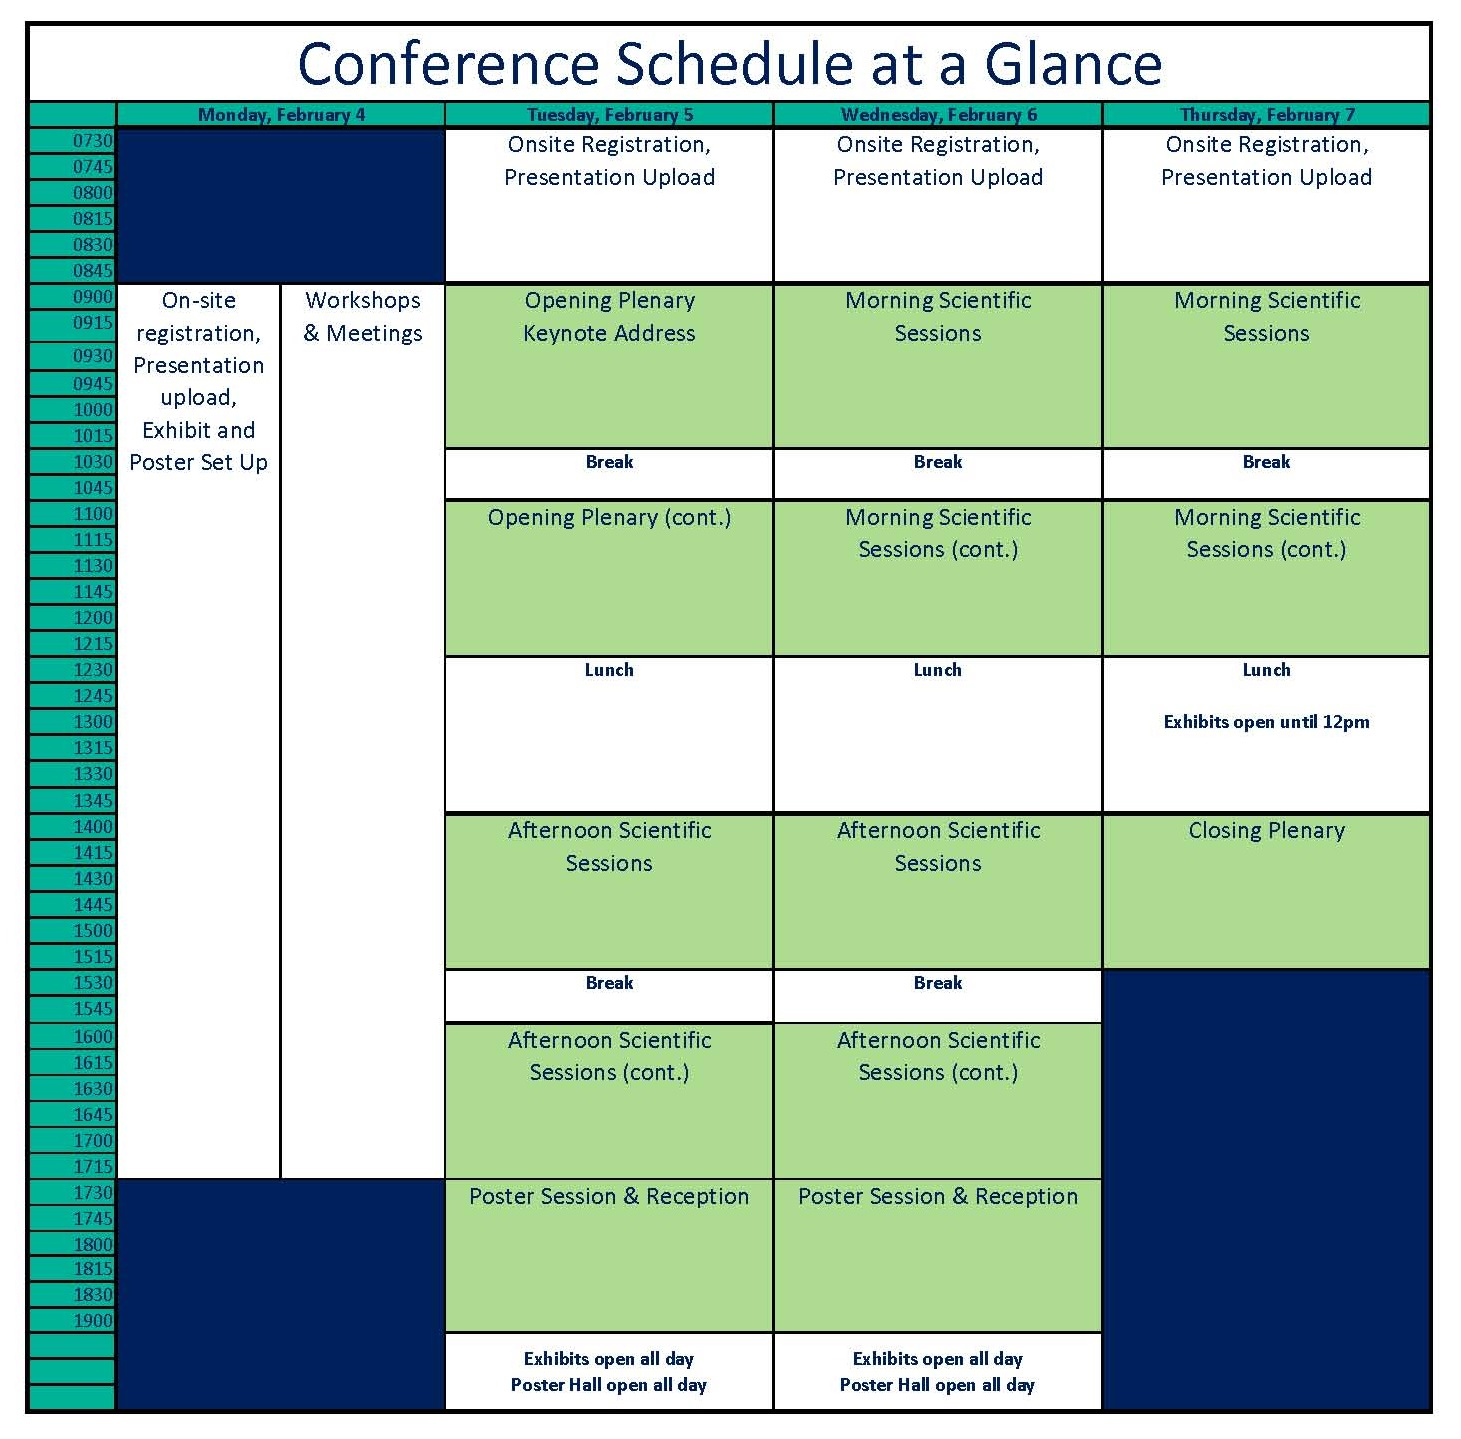 conference schedule sept 20 no gomri